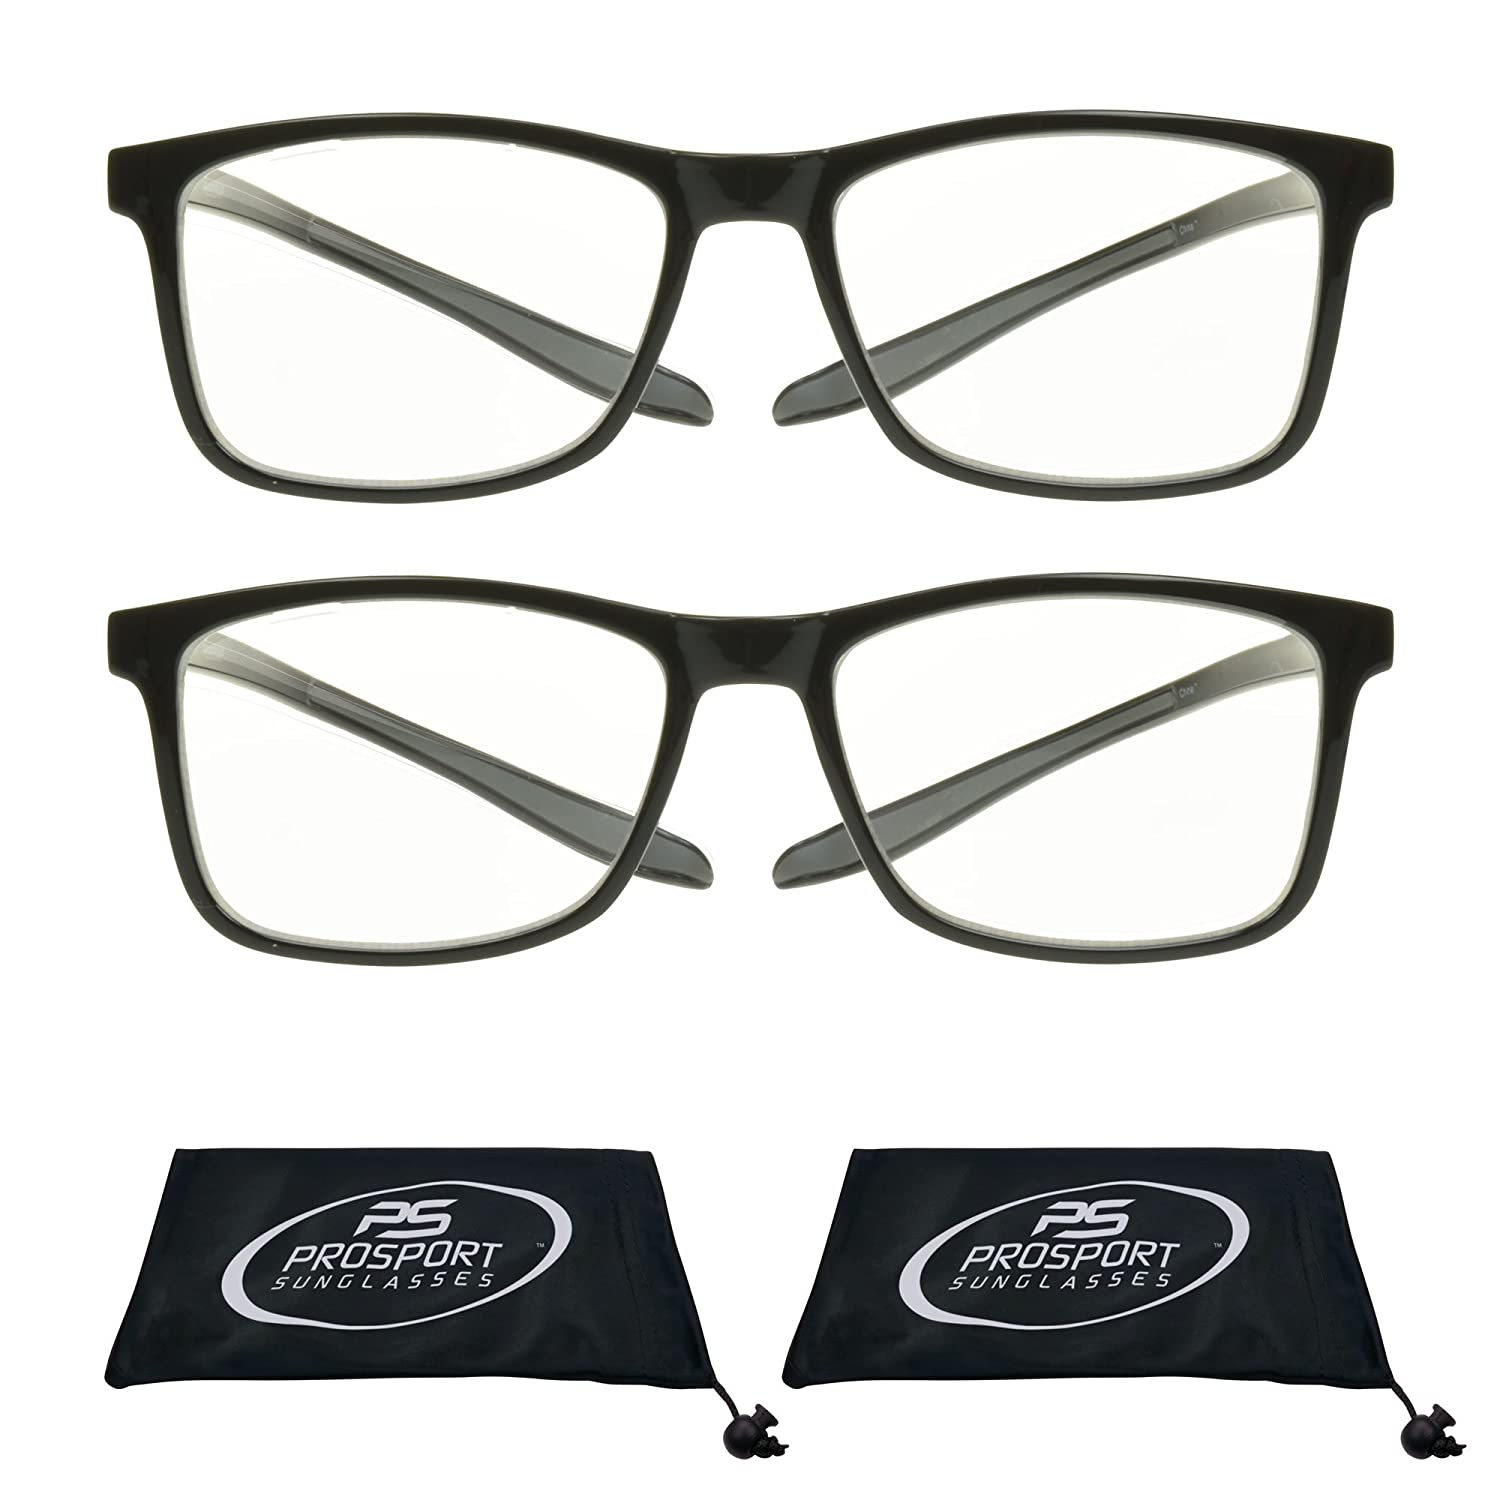 83b4be1ddaa Amazon.com  Multifocal Progressive 3 Magnifications in 1 Lens No Line  Computer Gaming Reading Glasses for Men   Women  Health   Personal Care